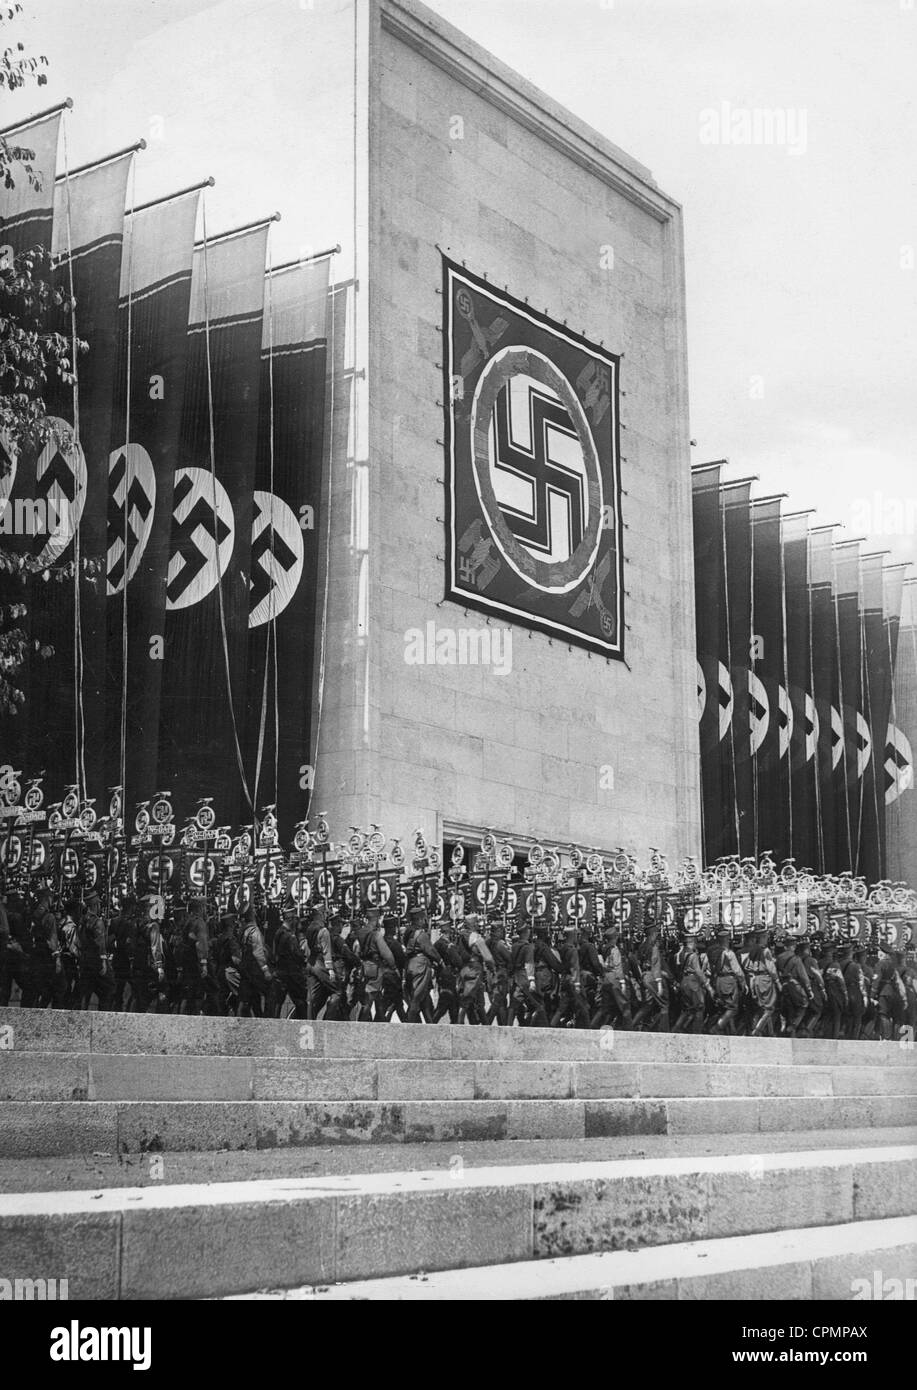 Façade of the Luitpold Hall during the Nuremberg Rally, 1937 - Stock Image